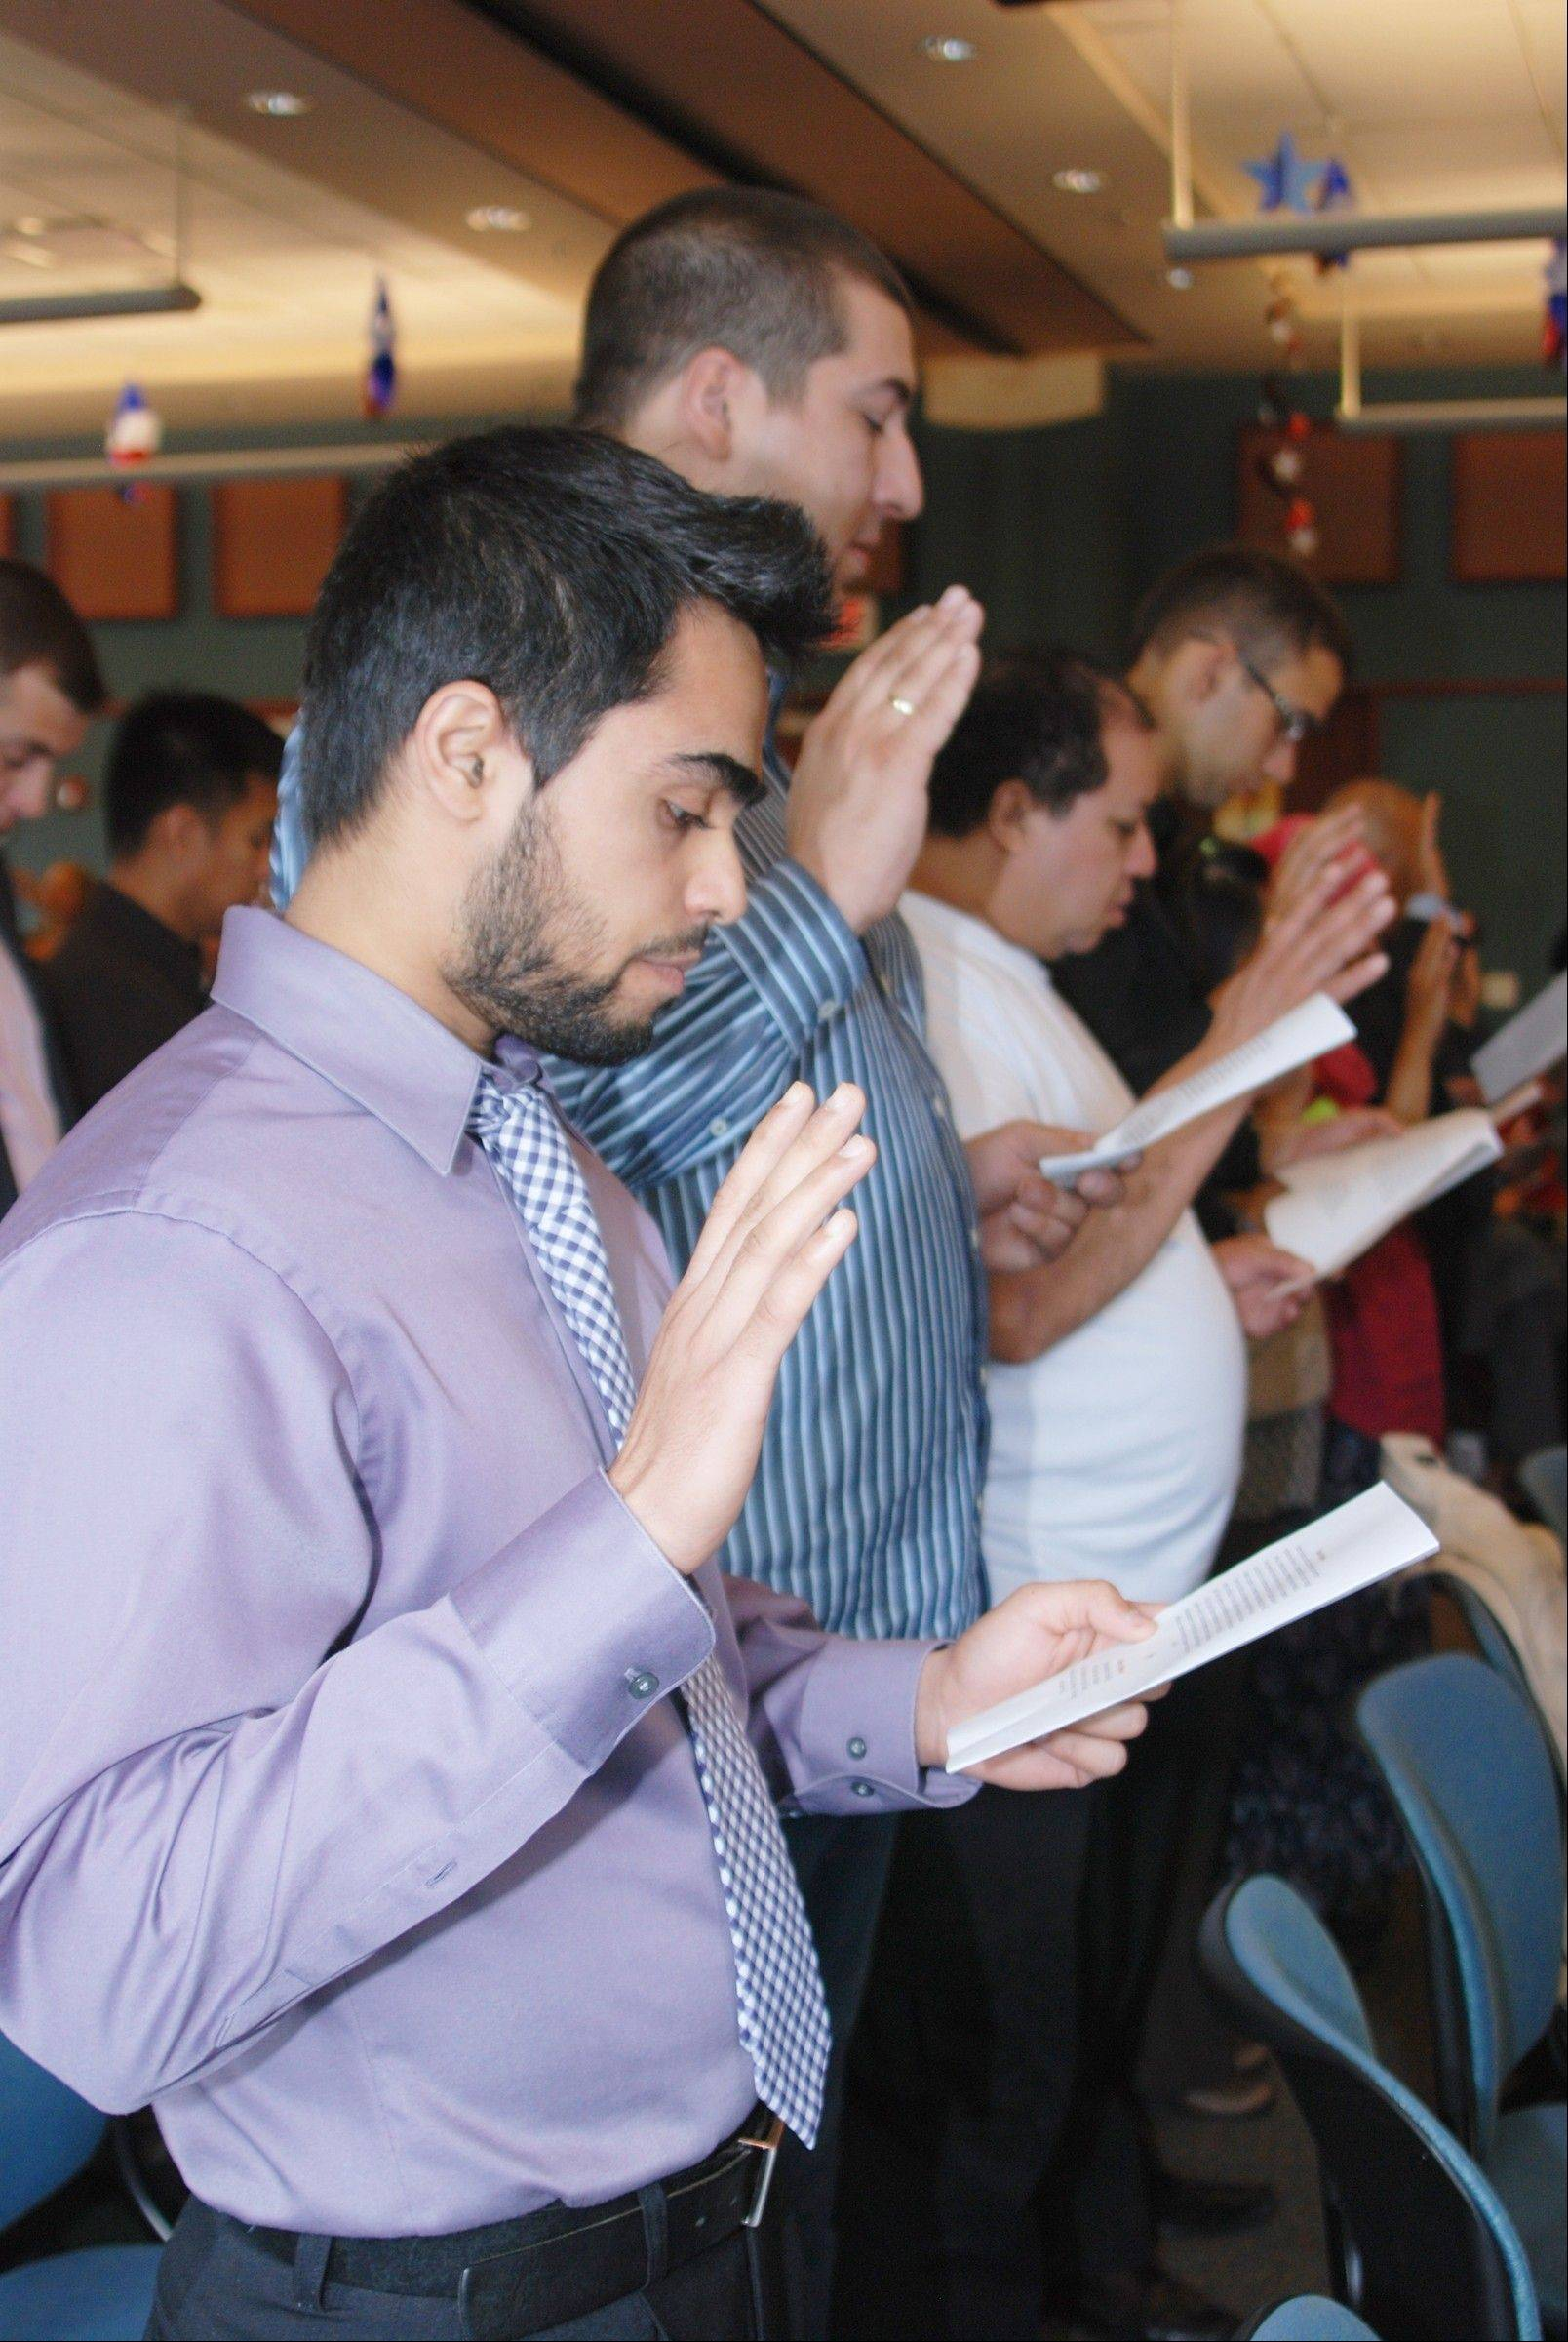 On Sept. 21, 82 immigrants became U.S. citizens.